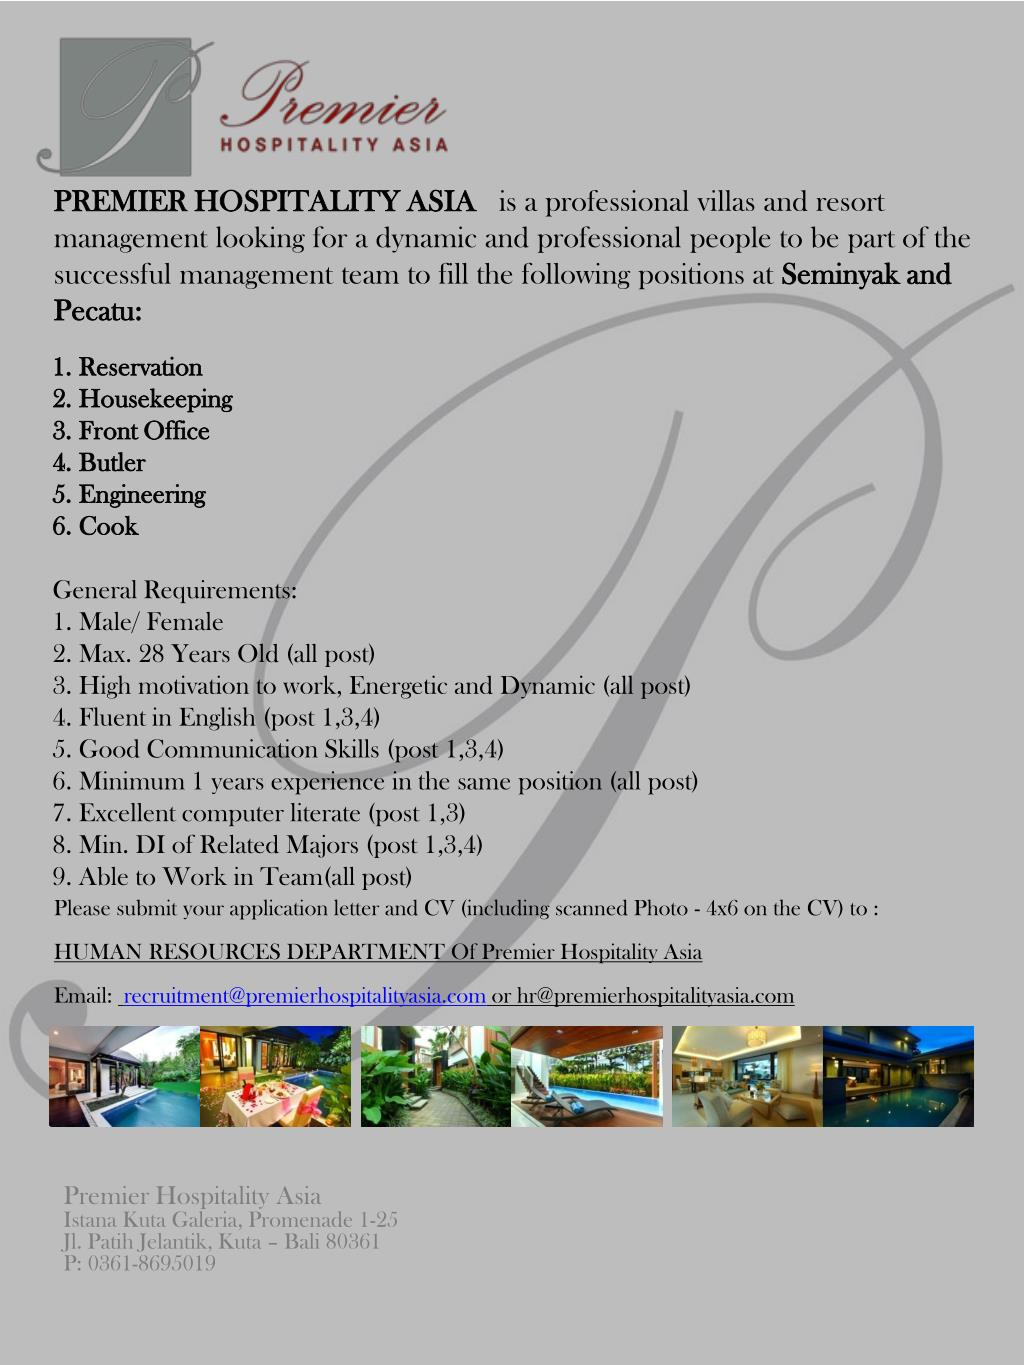 Ppt Reservation Housekeeping Front Office Butler Engineering Cook General Requirements Powerpoint Presentation Id 4722327